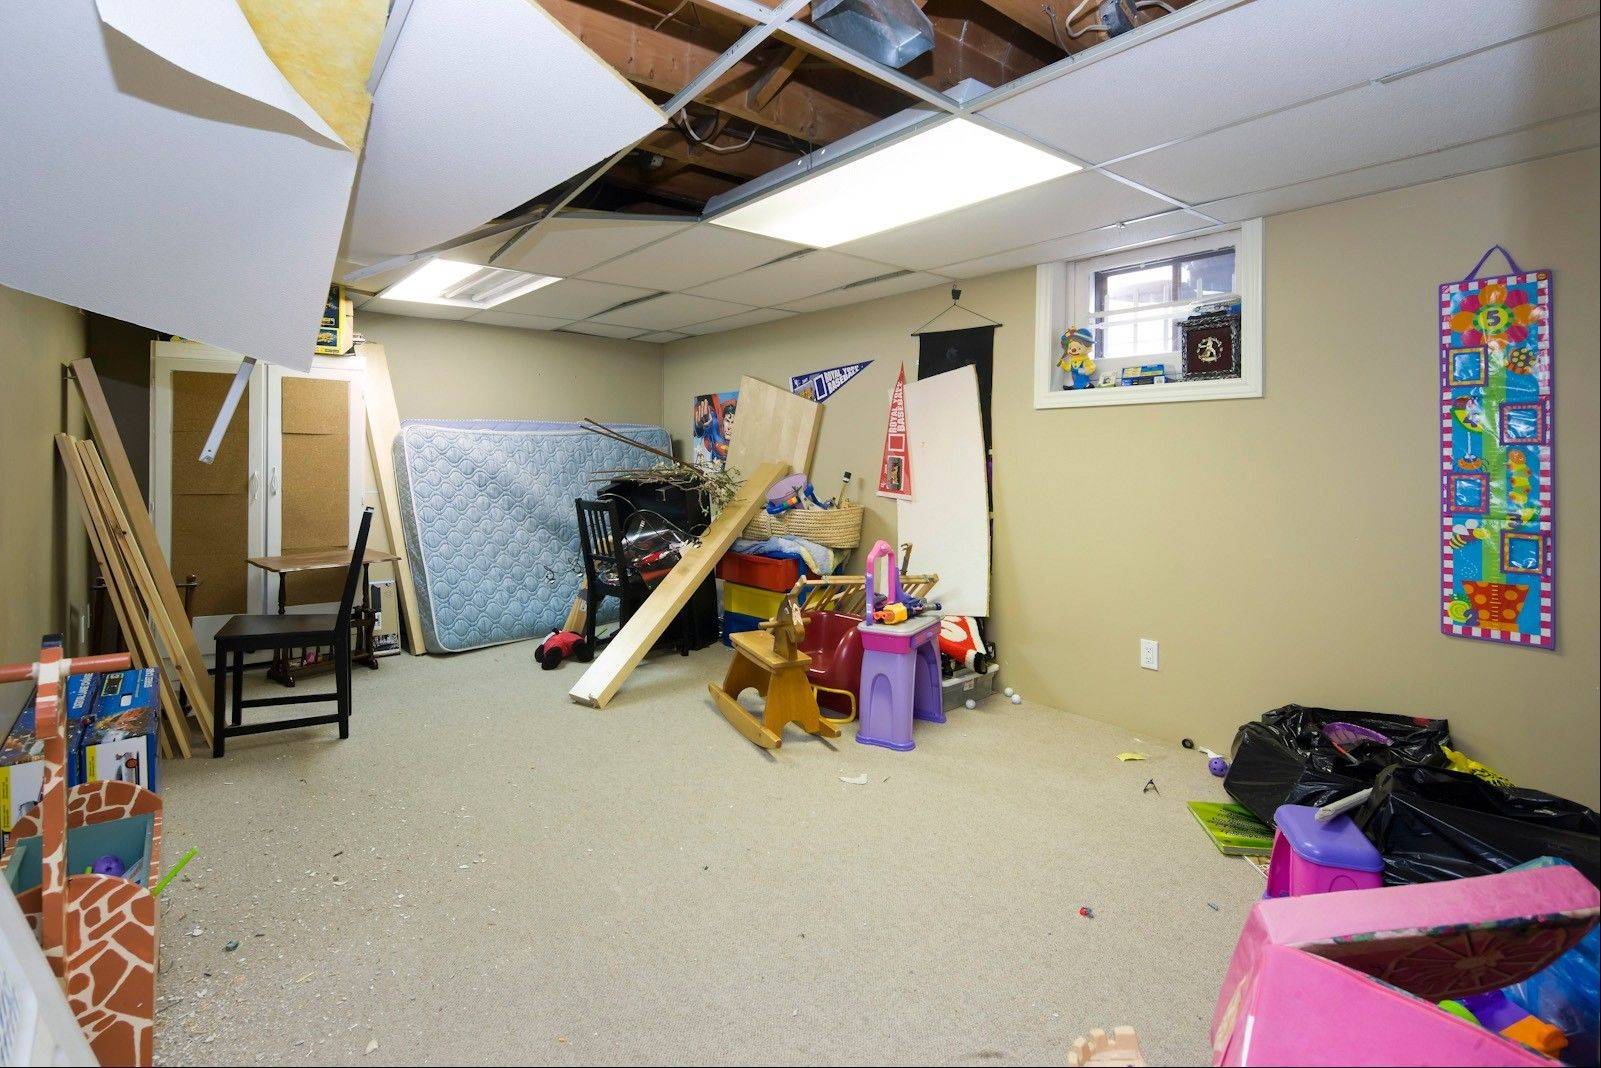 The lower level of this bungalow had a lot of space, but was a total disaster. It had become the final resting place for discarded toys and old furniture, and even the drop ceiling was tired and falling down.